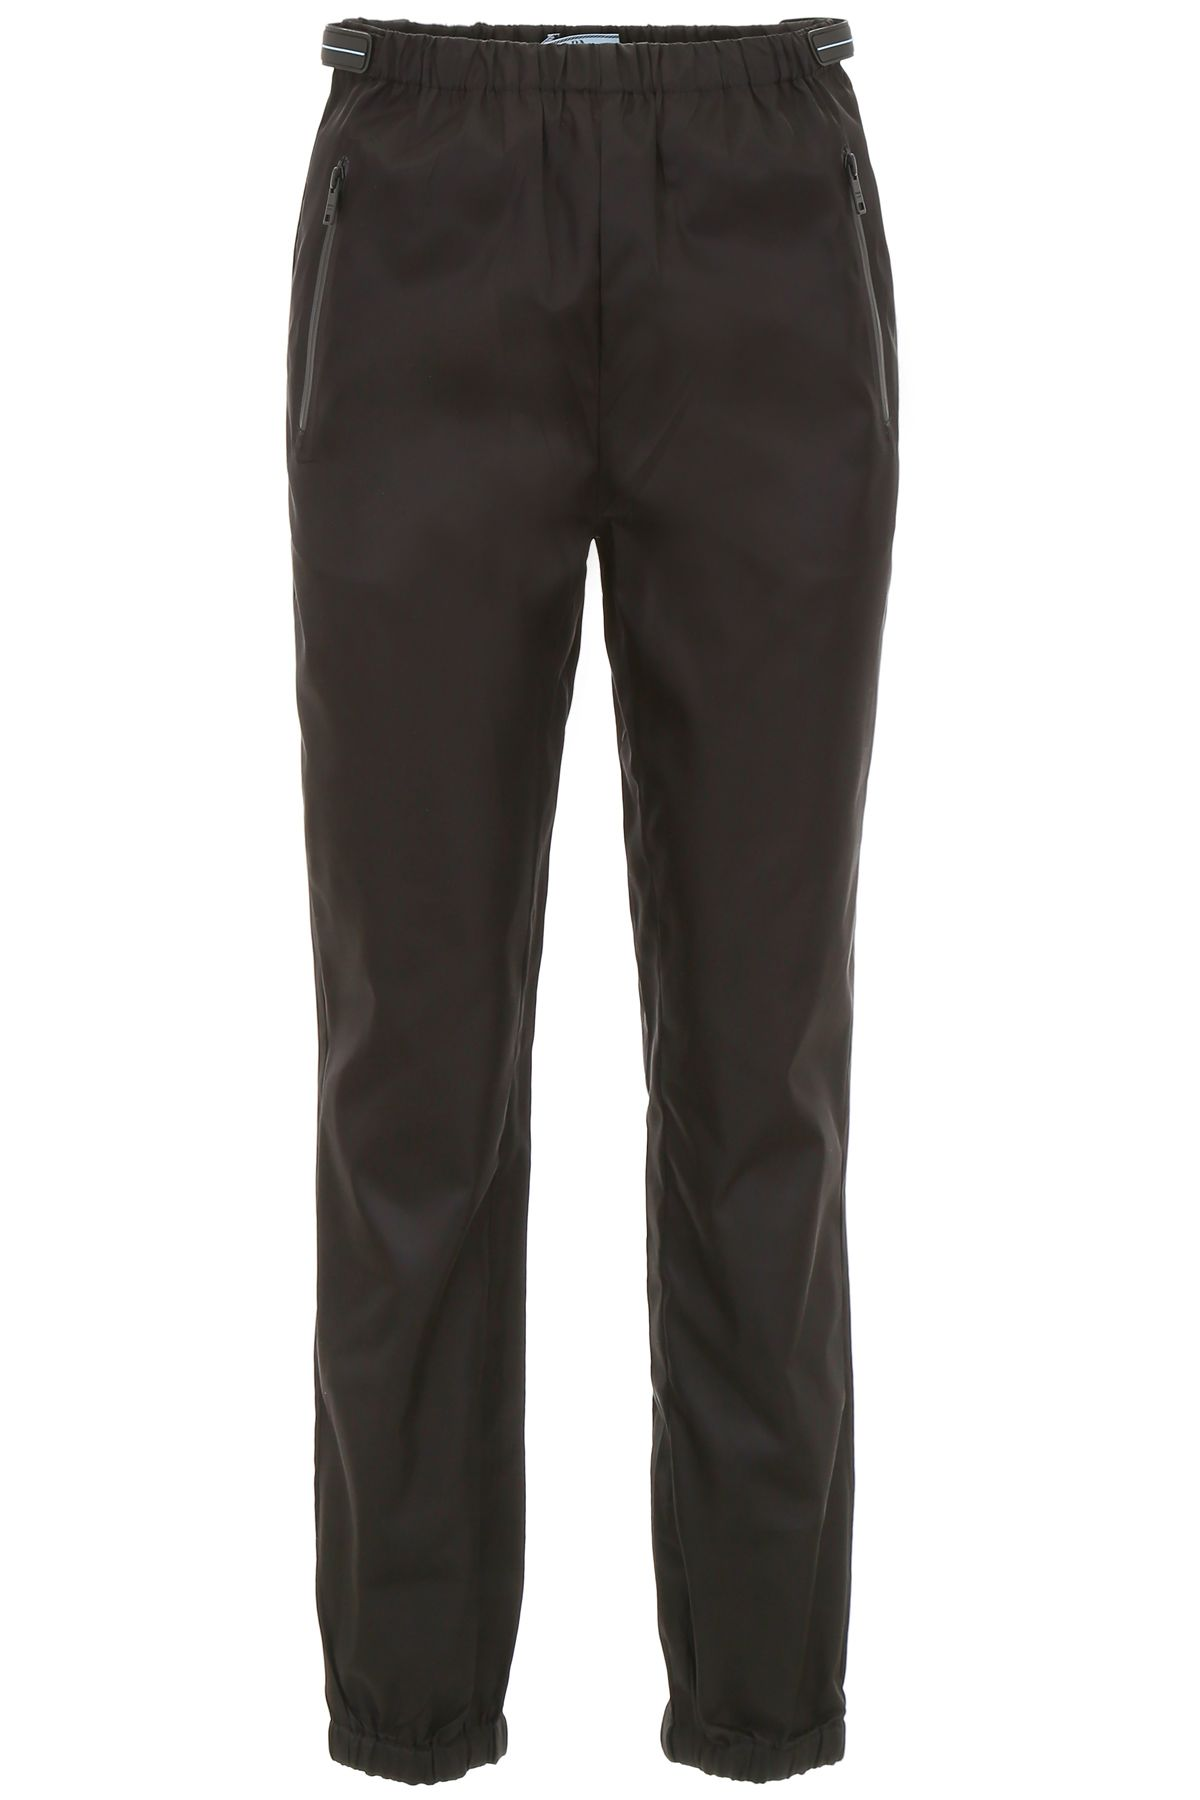 PRADA TROUSERS WITH PATCHES